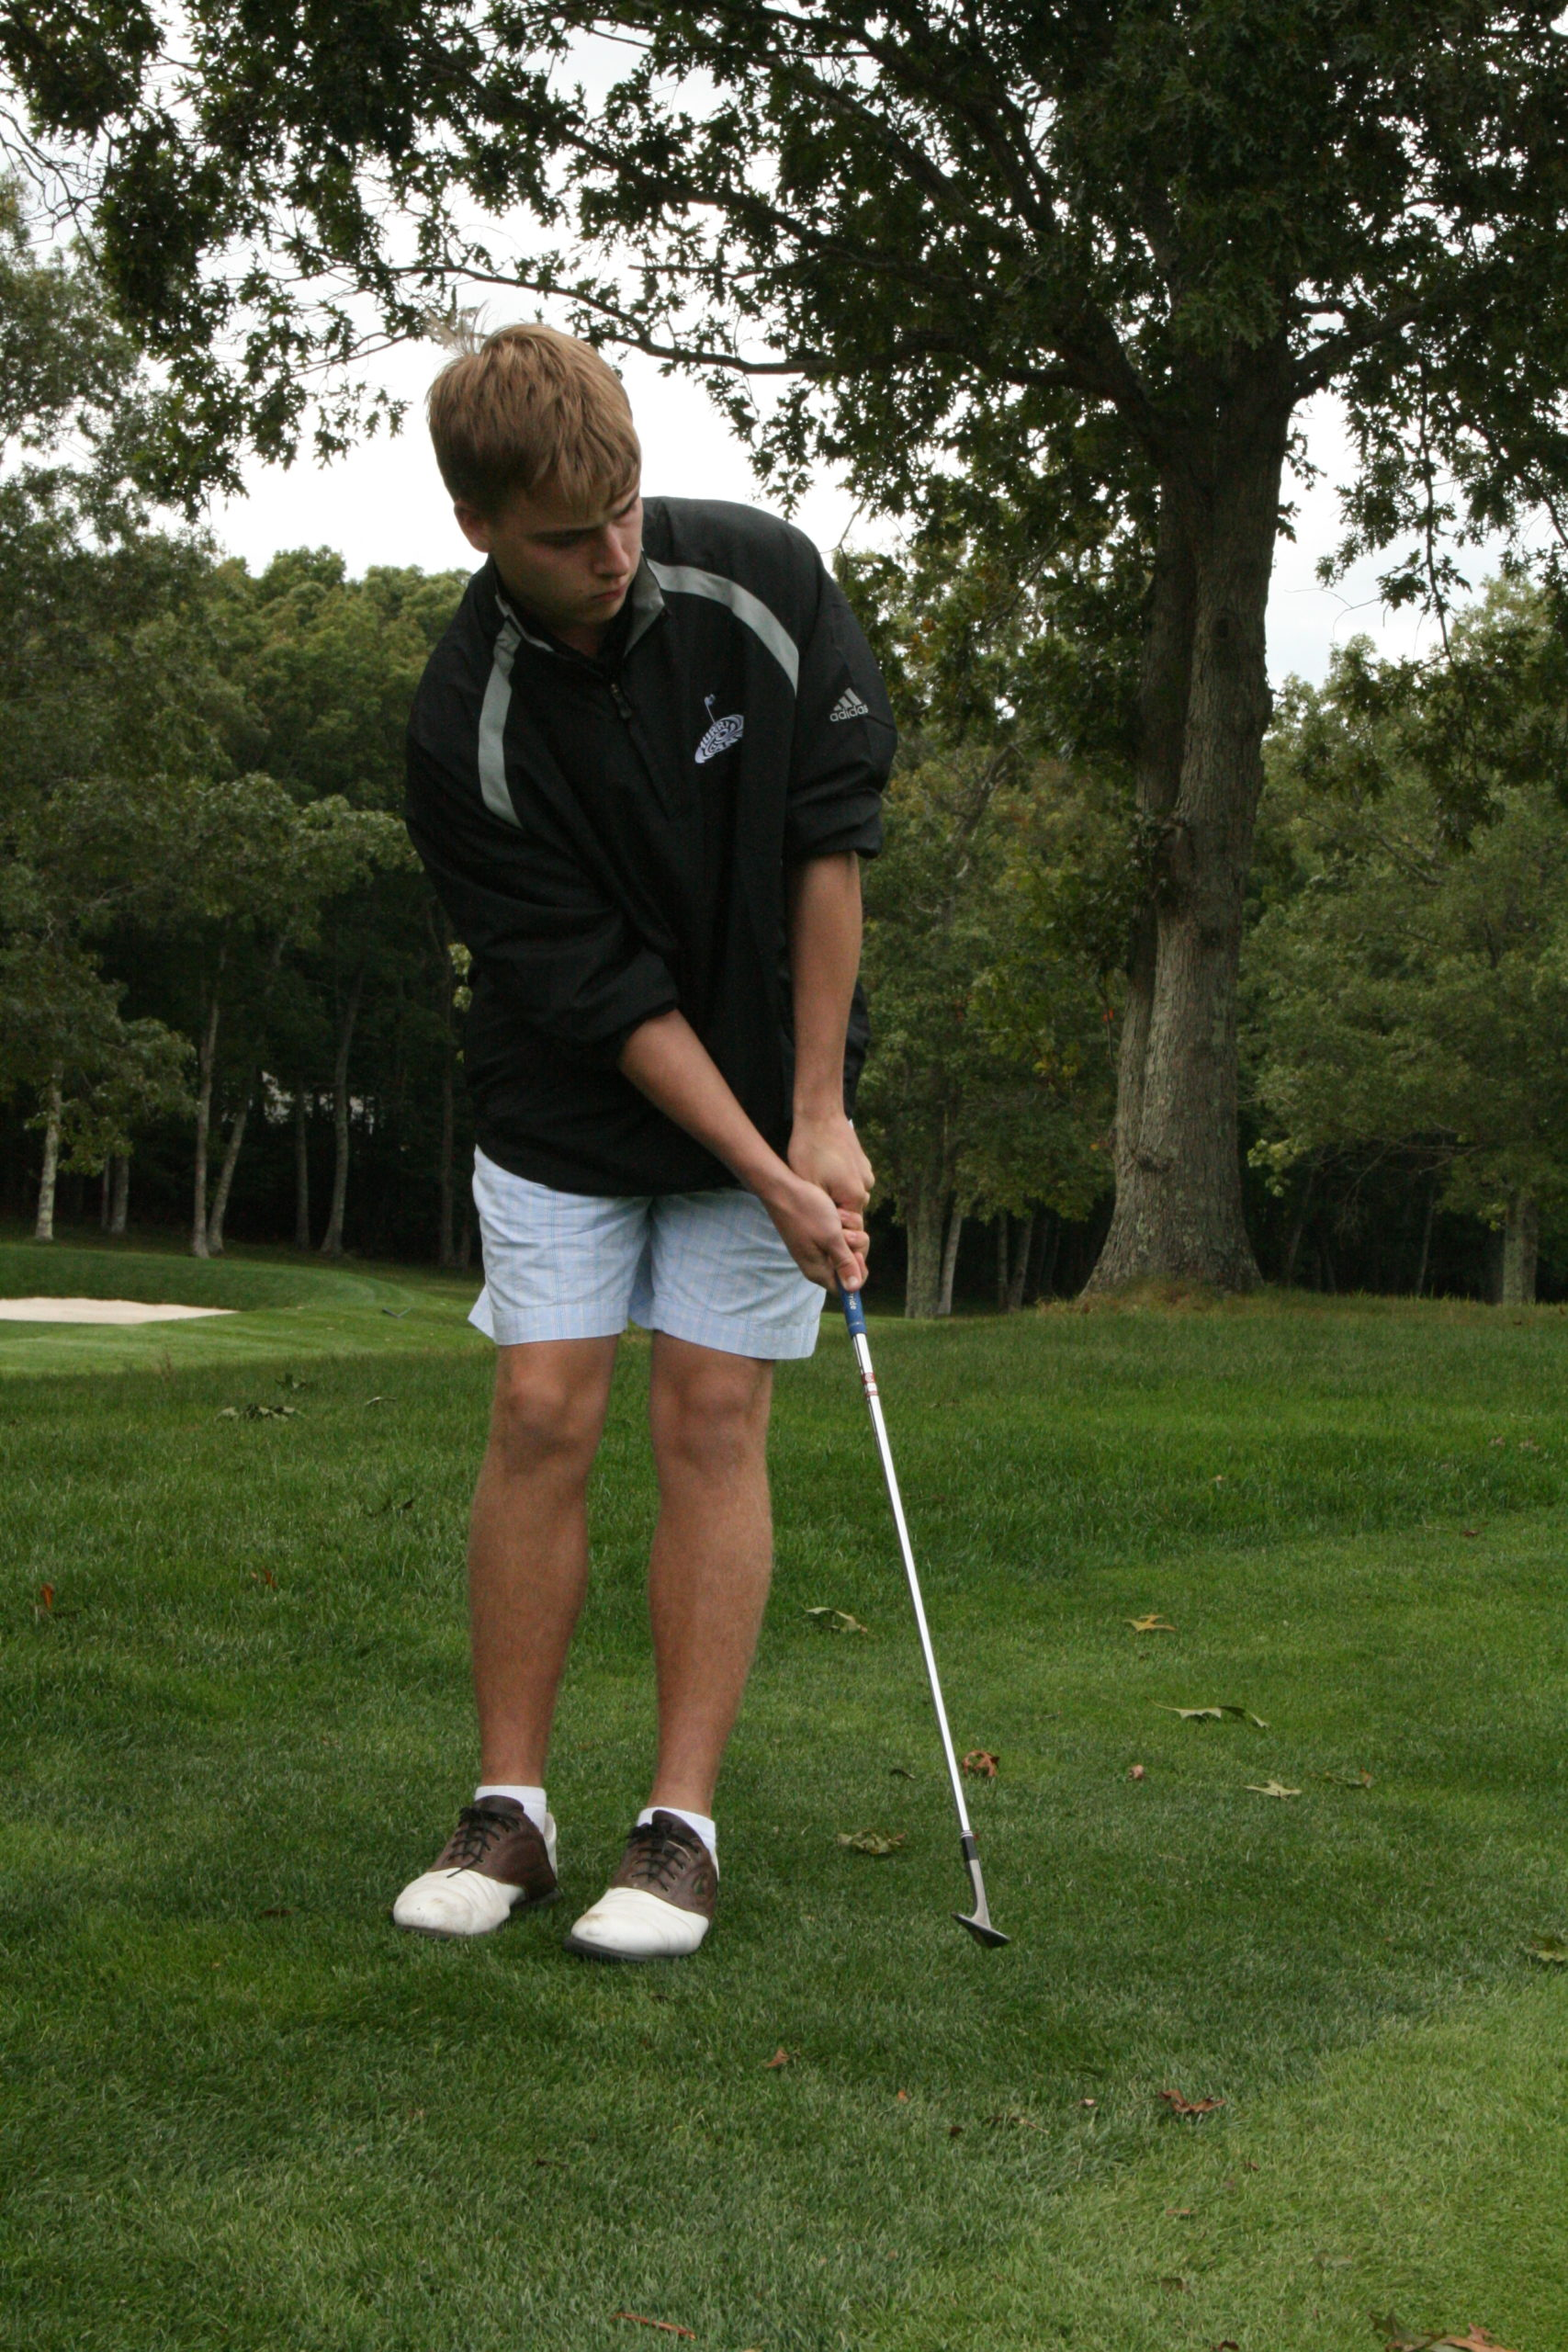 C.J. Andrews was a key golfer for Westhampton Beach, playing on the varsity team as an eighth grader and through into his high school years.